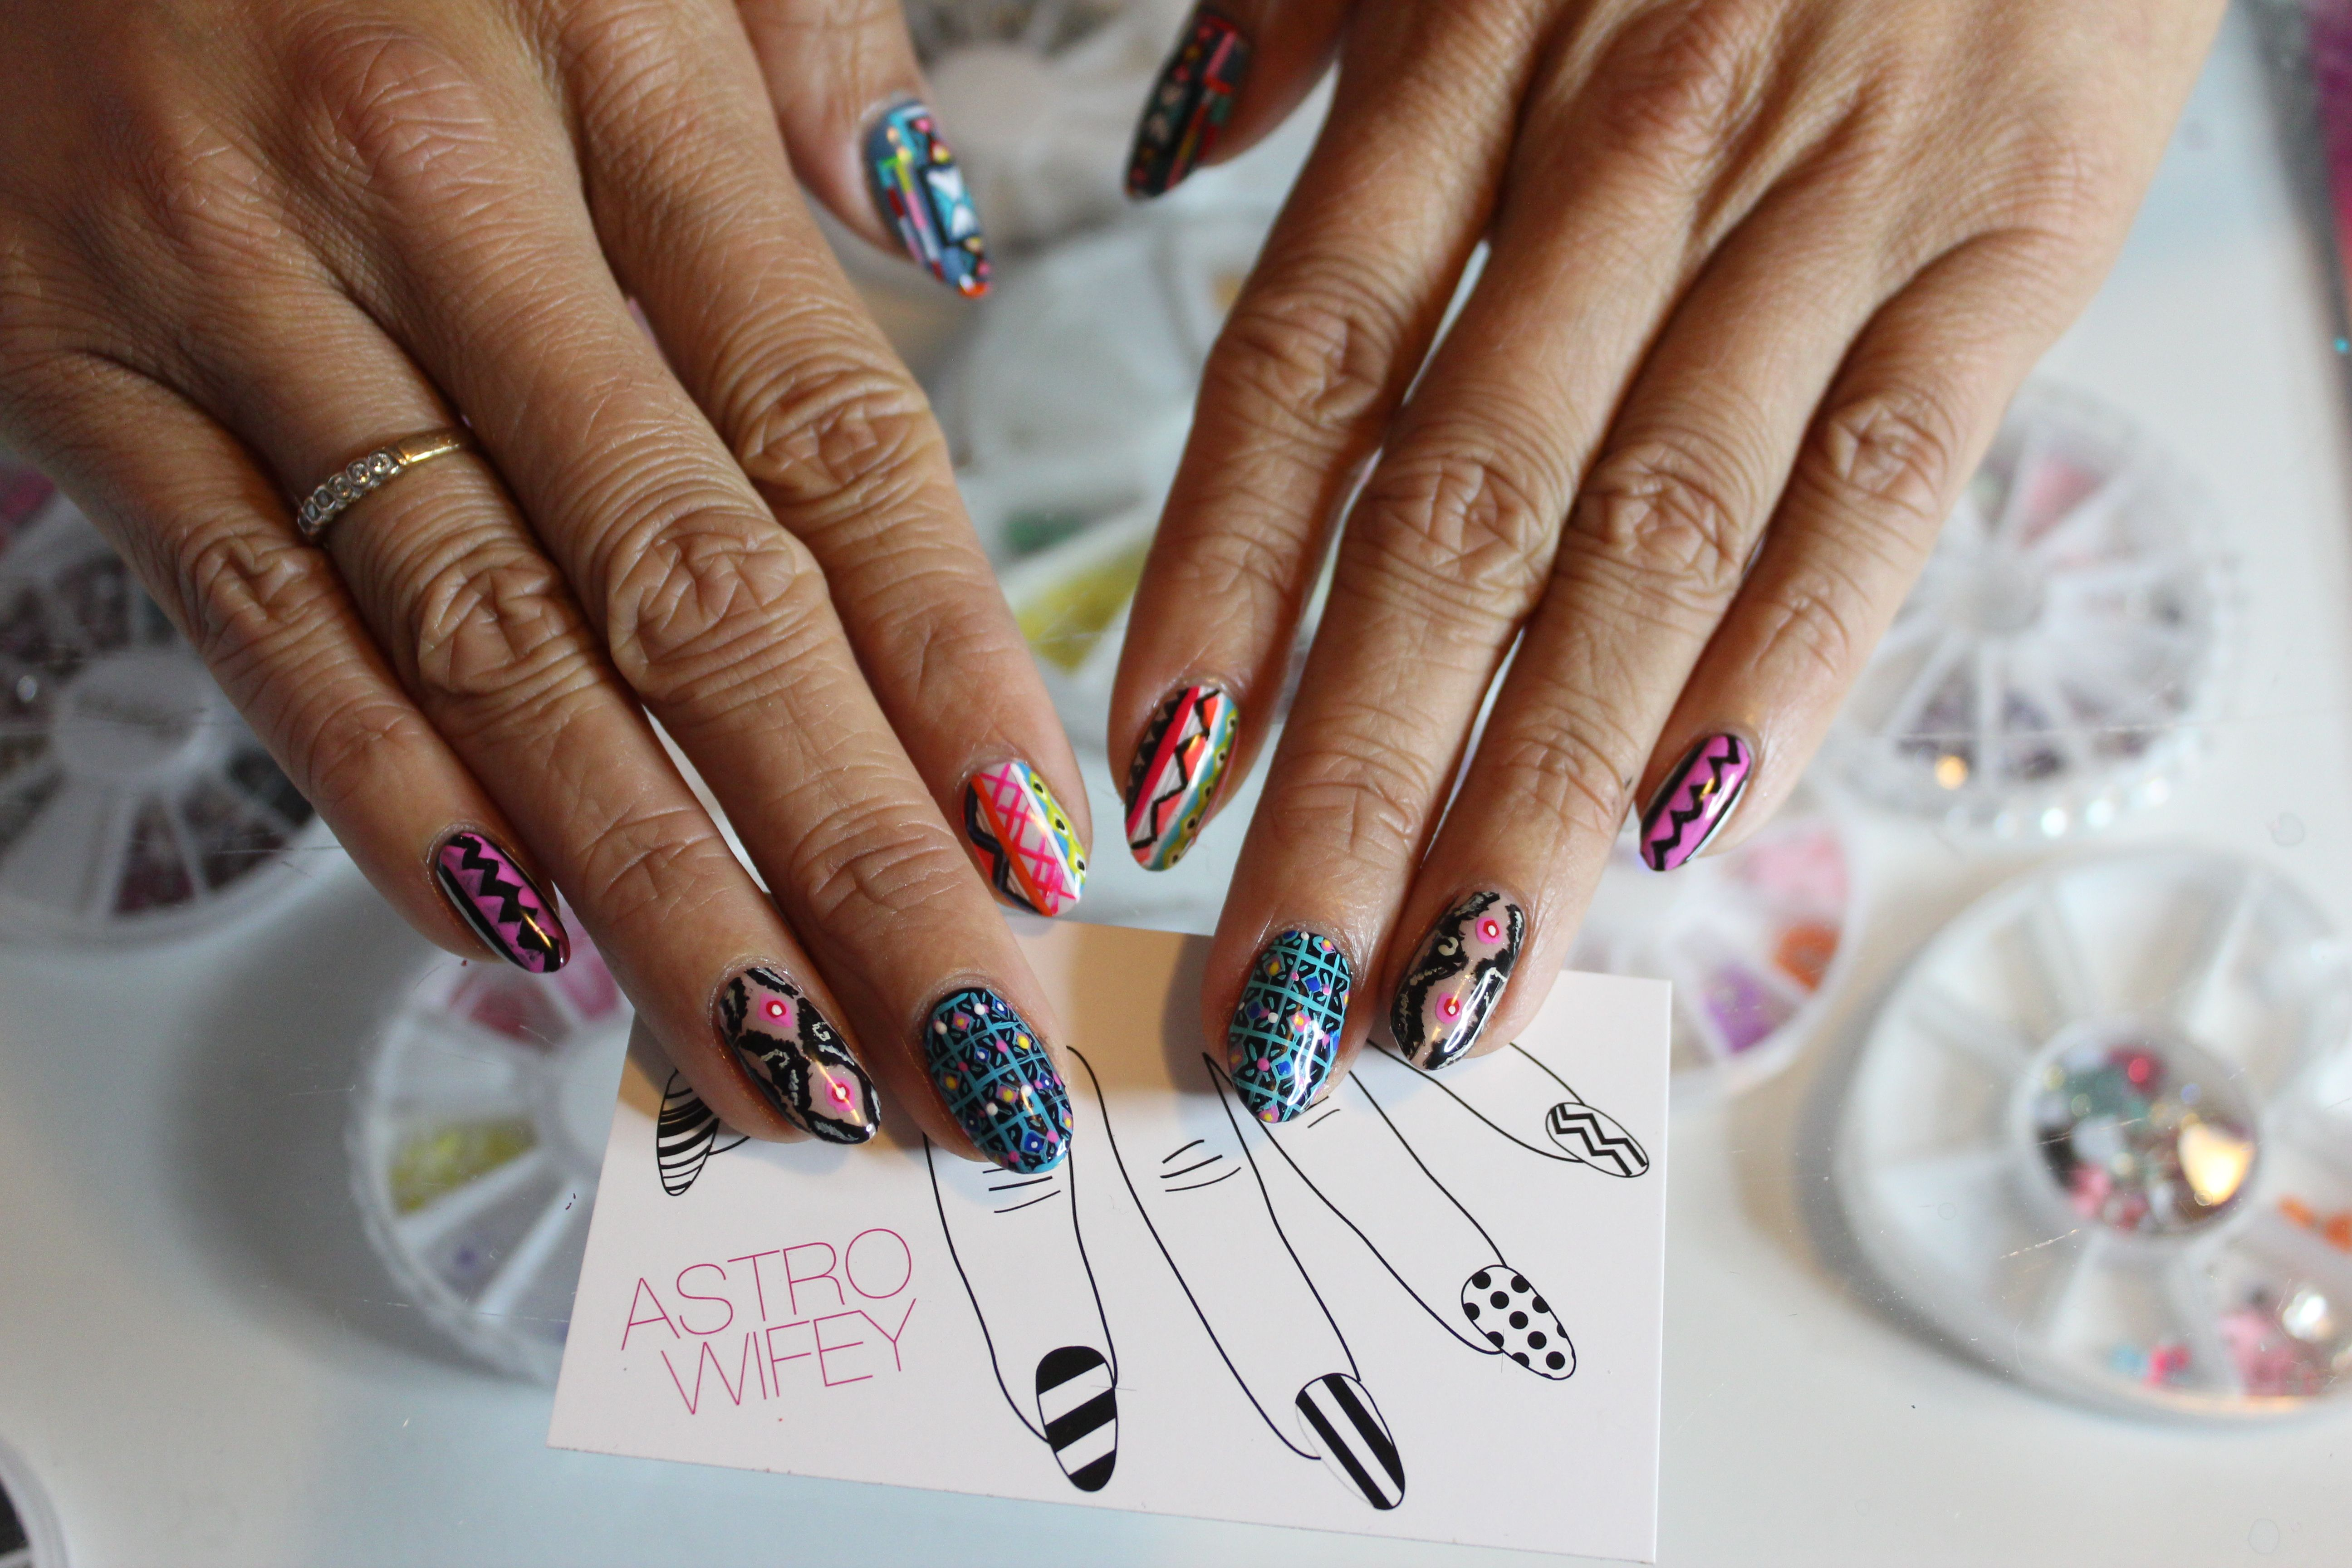 nails featured